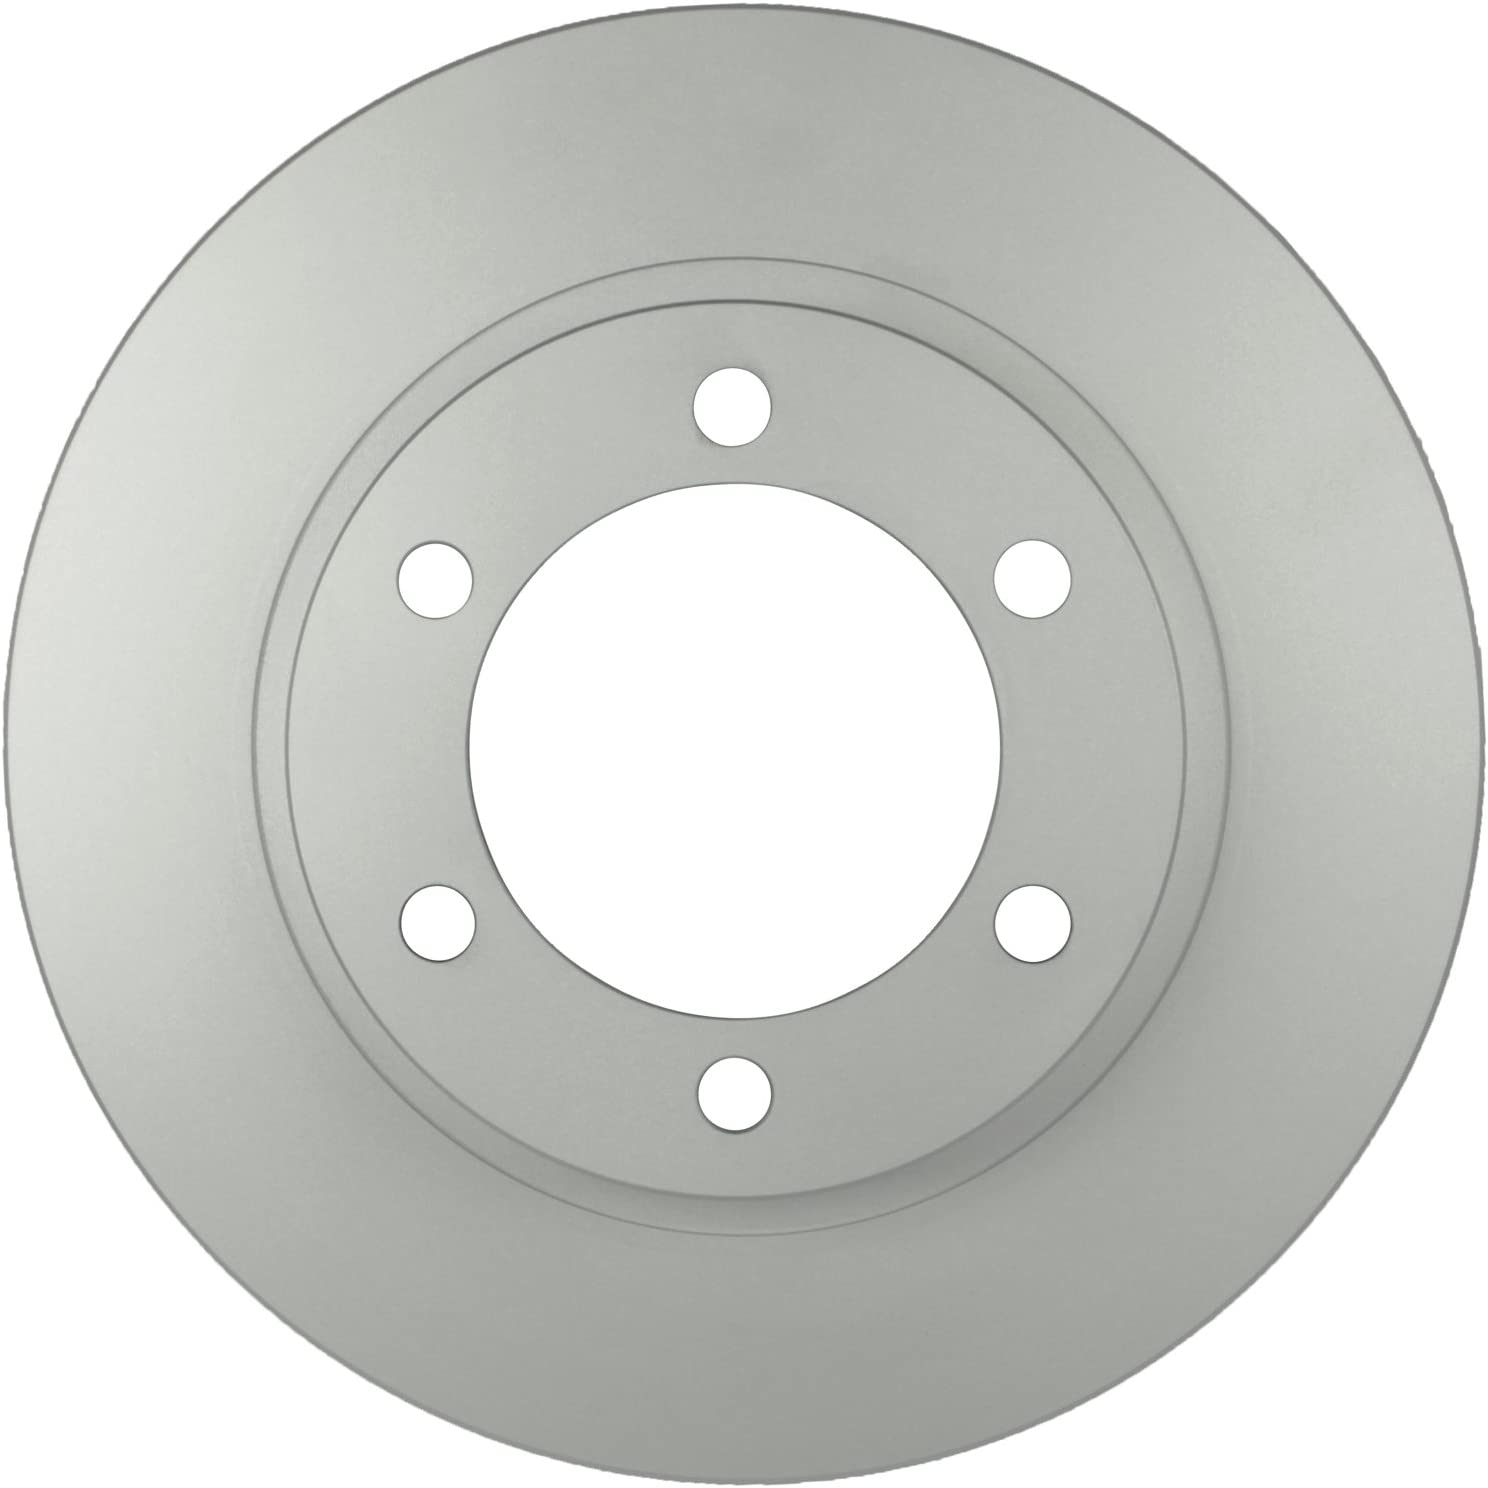 The Best Bosch Quietcast Front Disc Brake Rotor